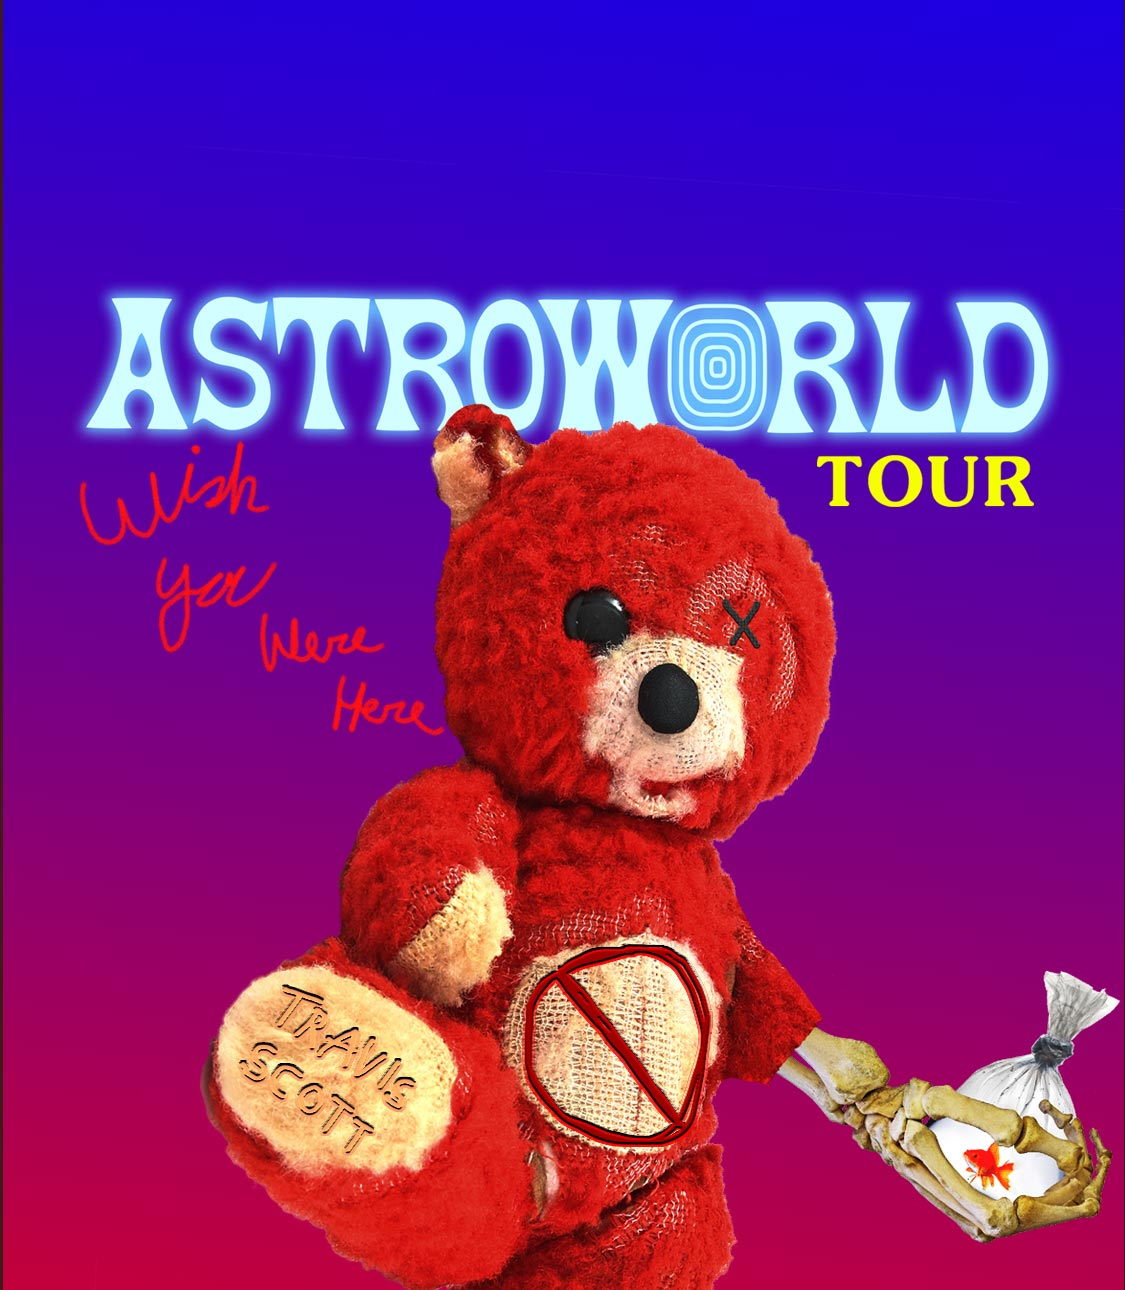 51220fd8ad21 Travis Scott: ASTROWORLD - WISH YOU WERE HERE TOUR - Tampa